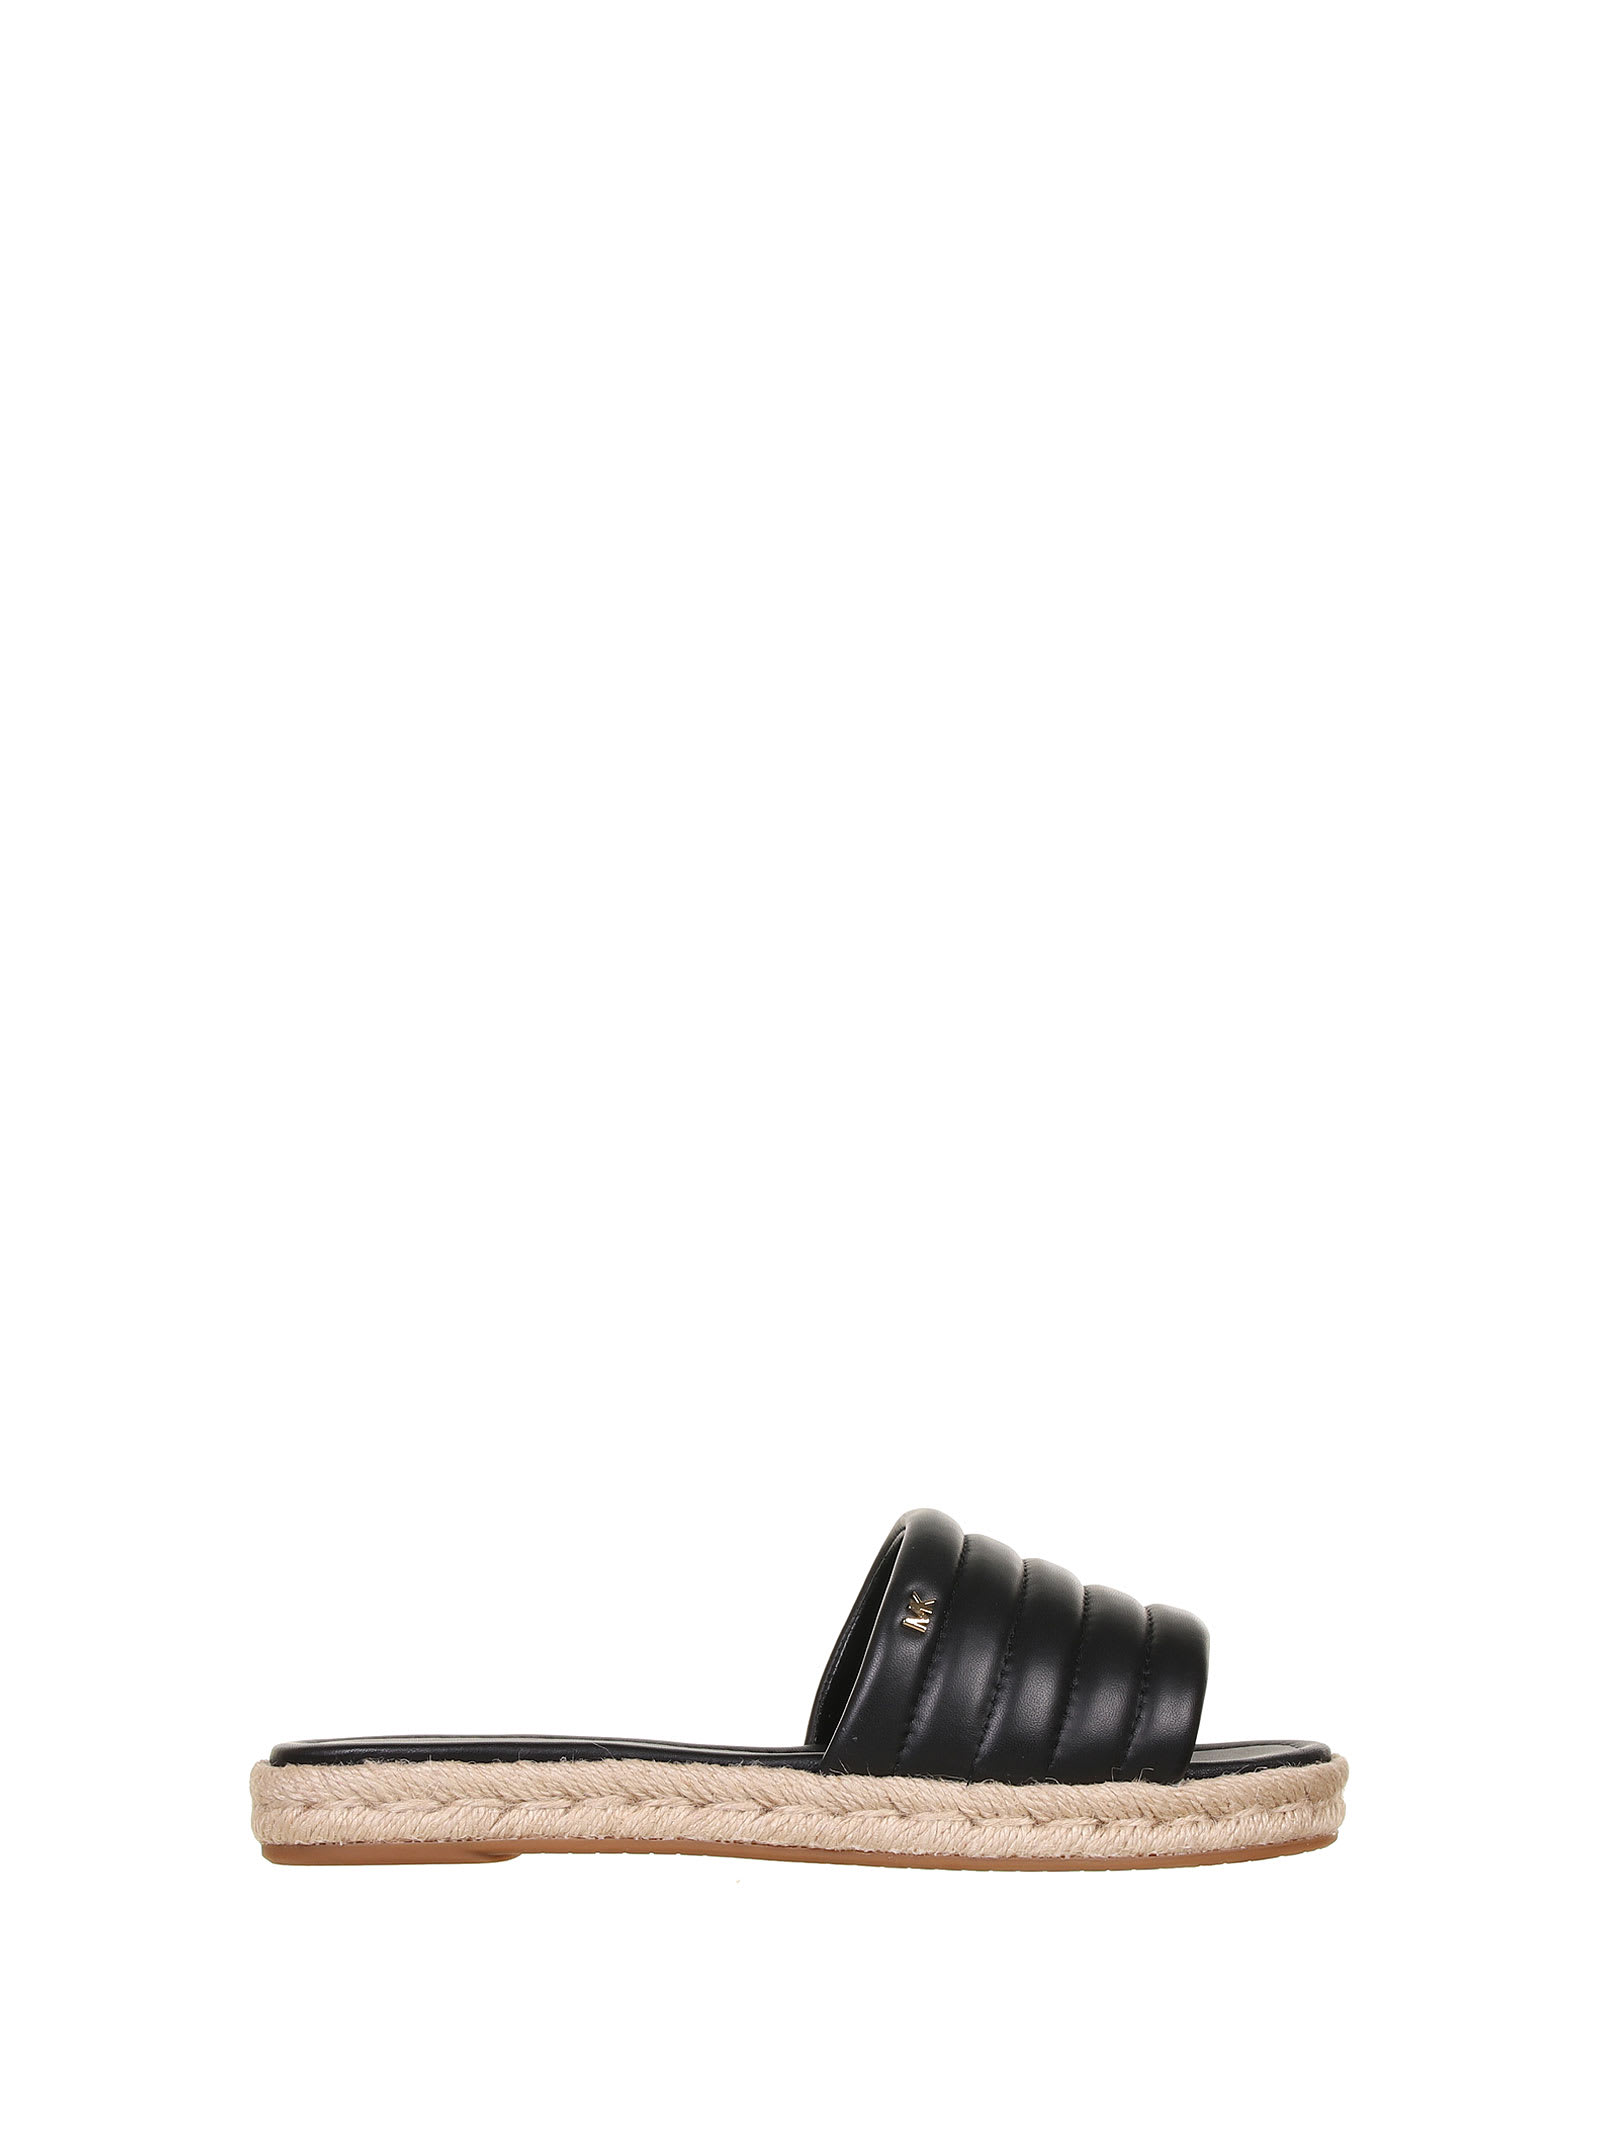 Buy Michael Kors Royce Black Sandals online, shop Michael Kors shoes with free shipping